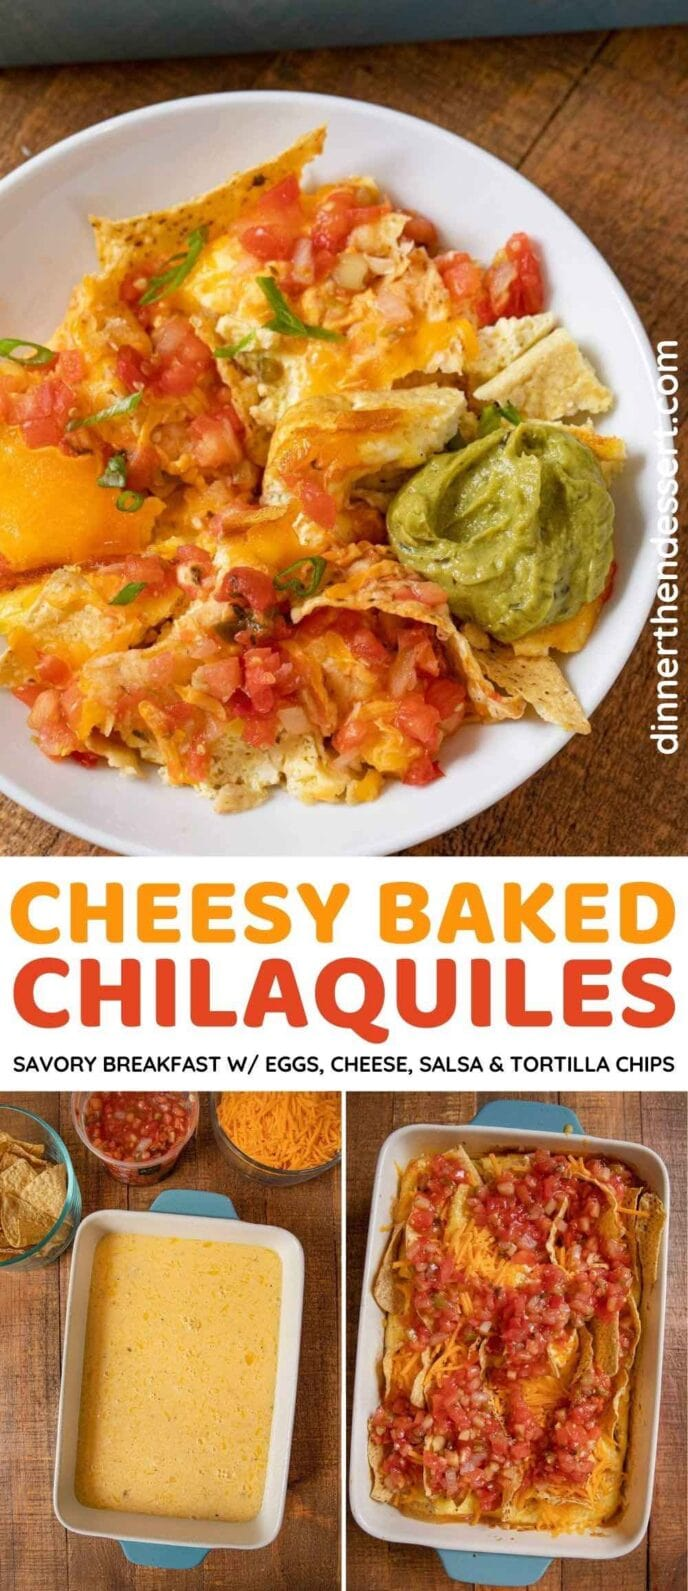 Cheesy Baked Chilaquiles collage